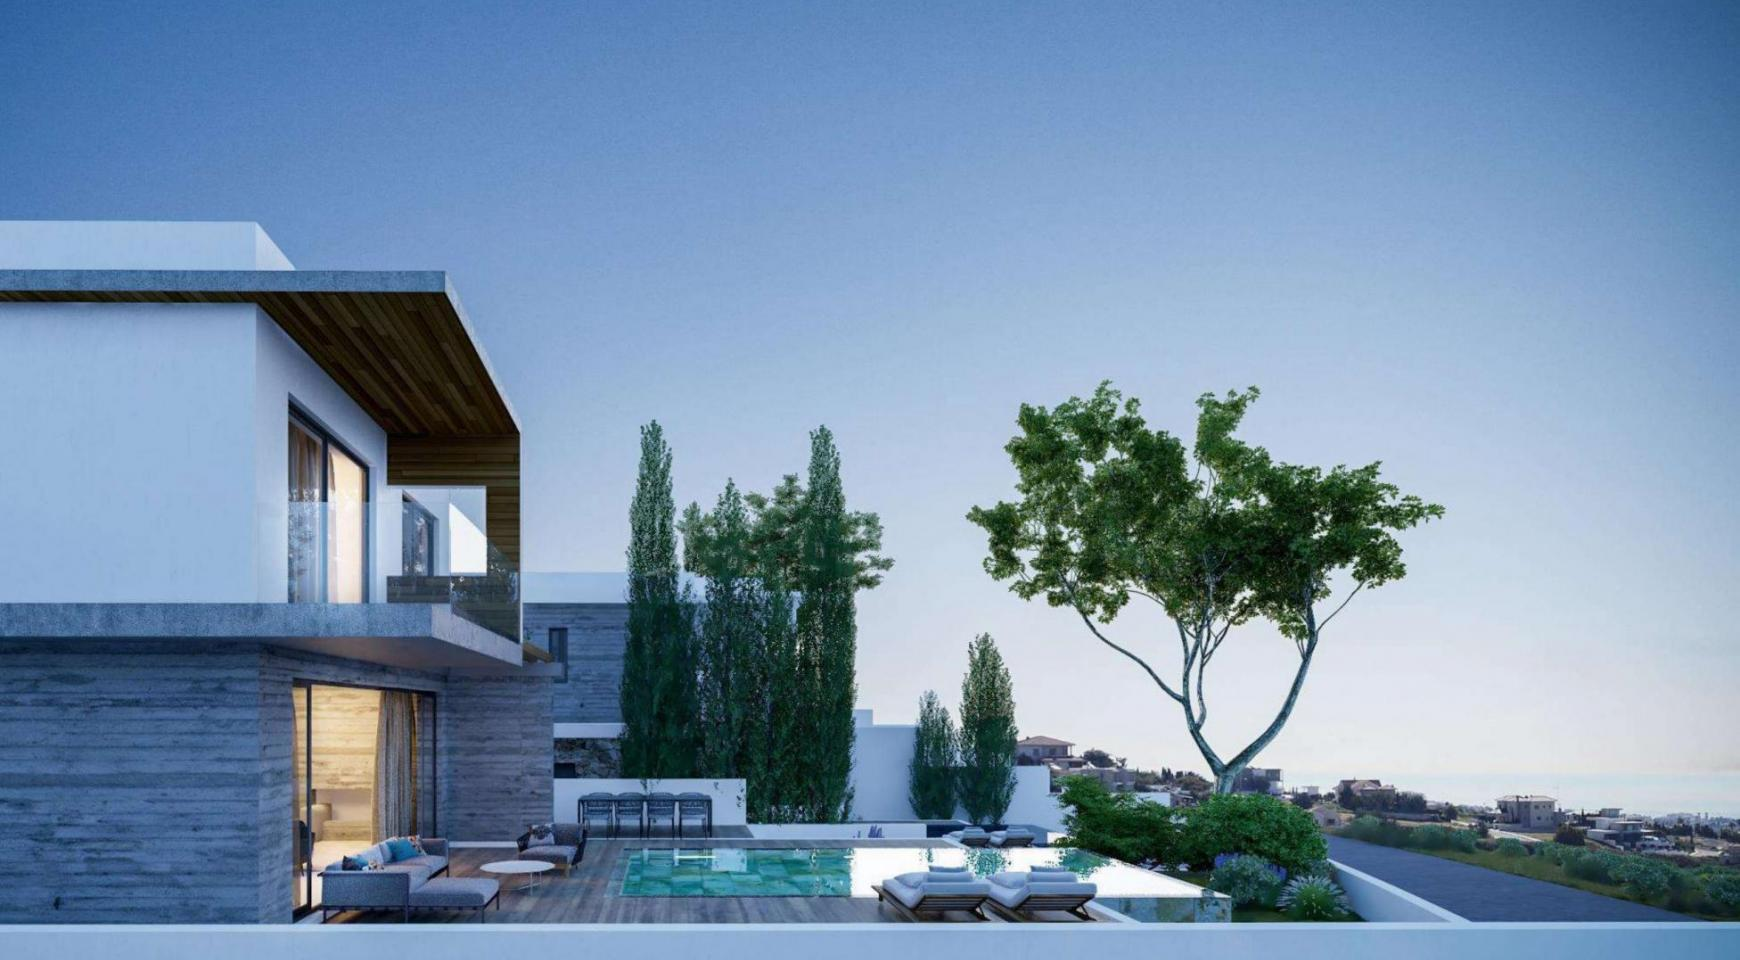 4 Bedroom Villa within a New Project in Agios Tychonas Area - 2